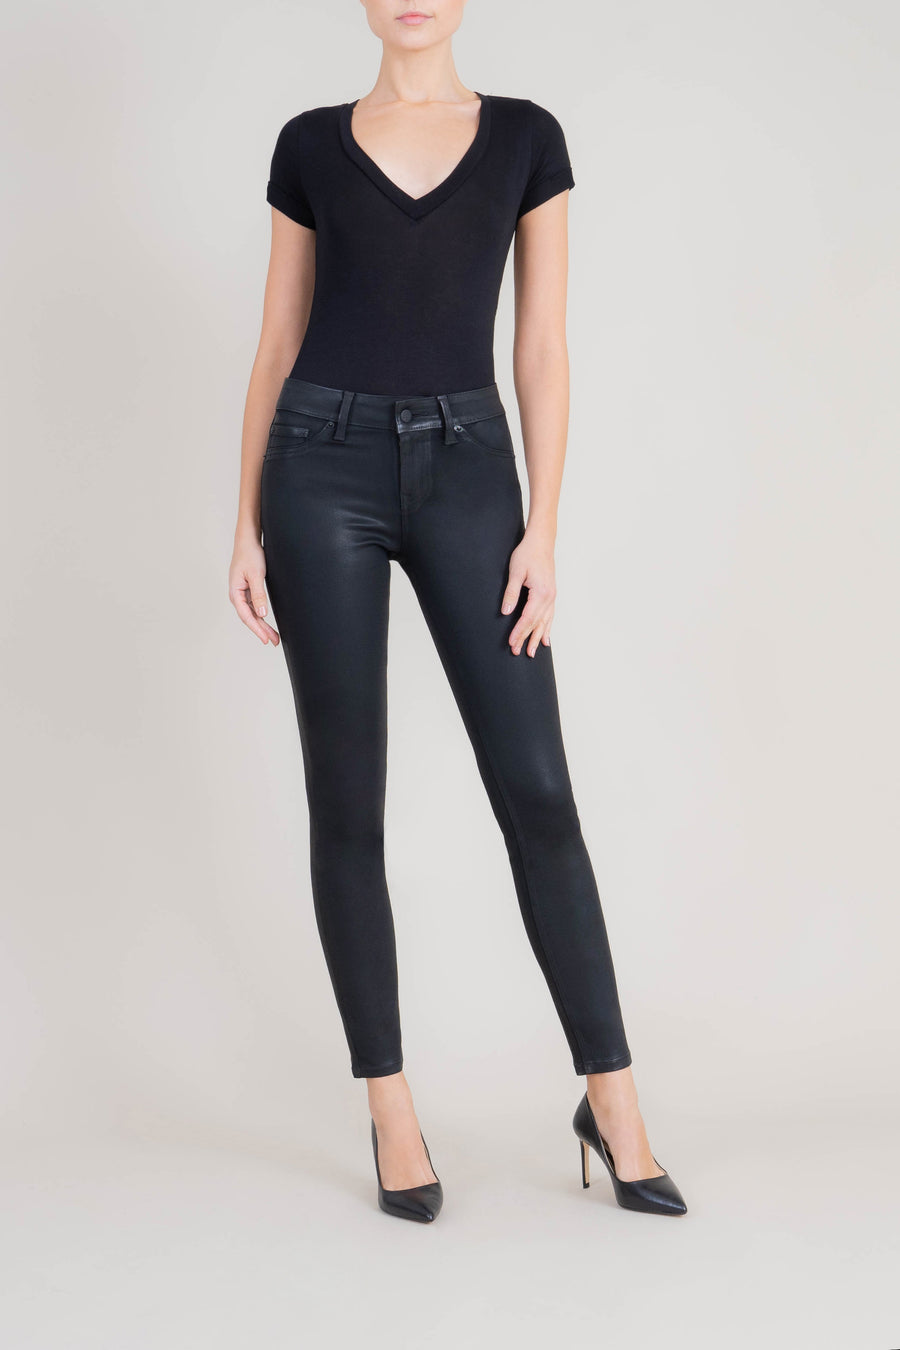 Liza Midrise Black Lux Coated Skinny - level99jeans